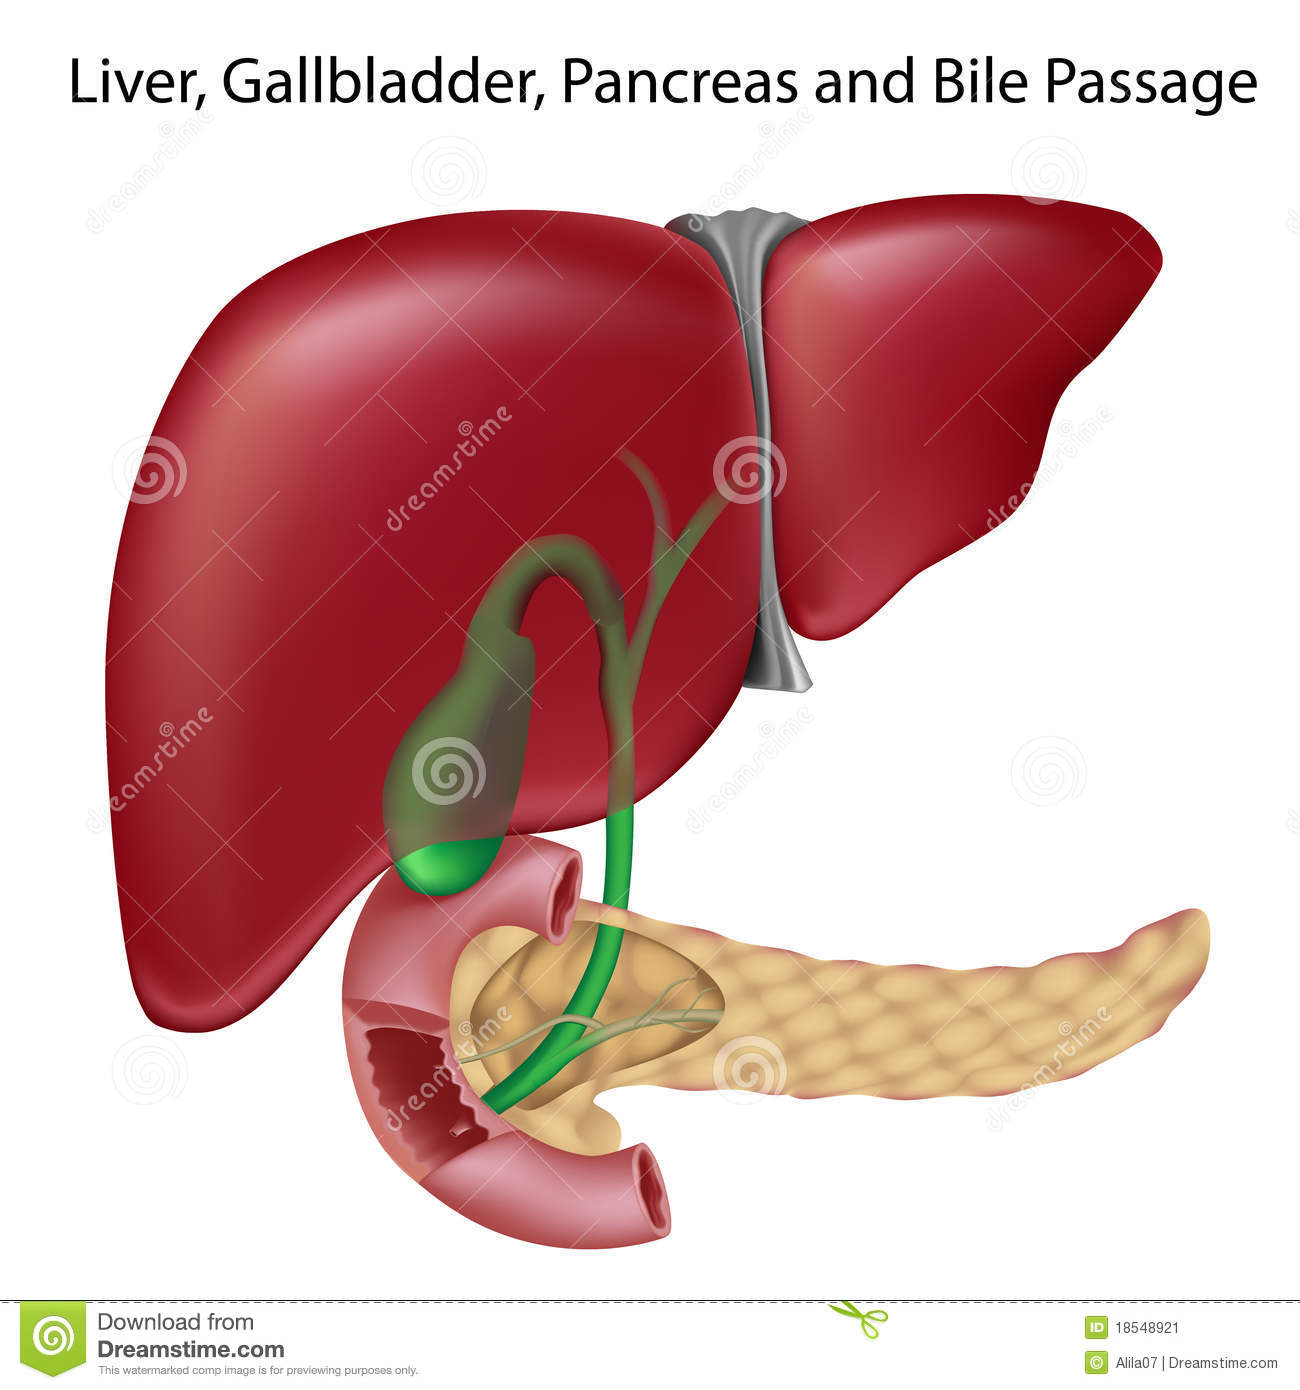 Bile passges, textbook accuracy, non-labeled v.